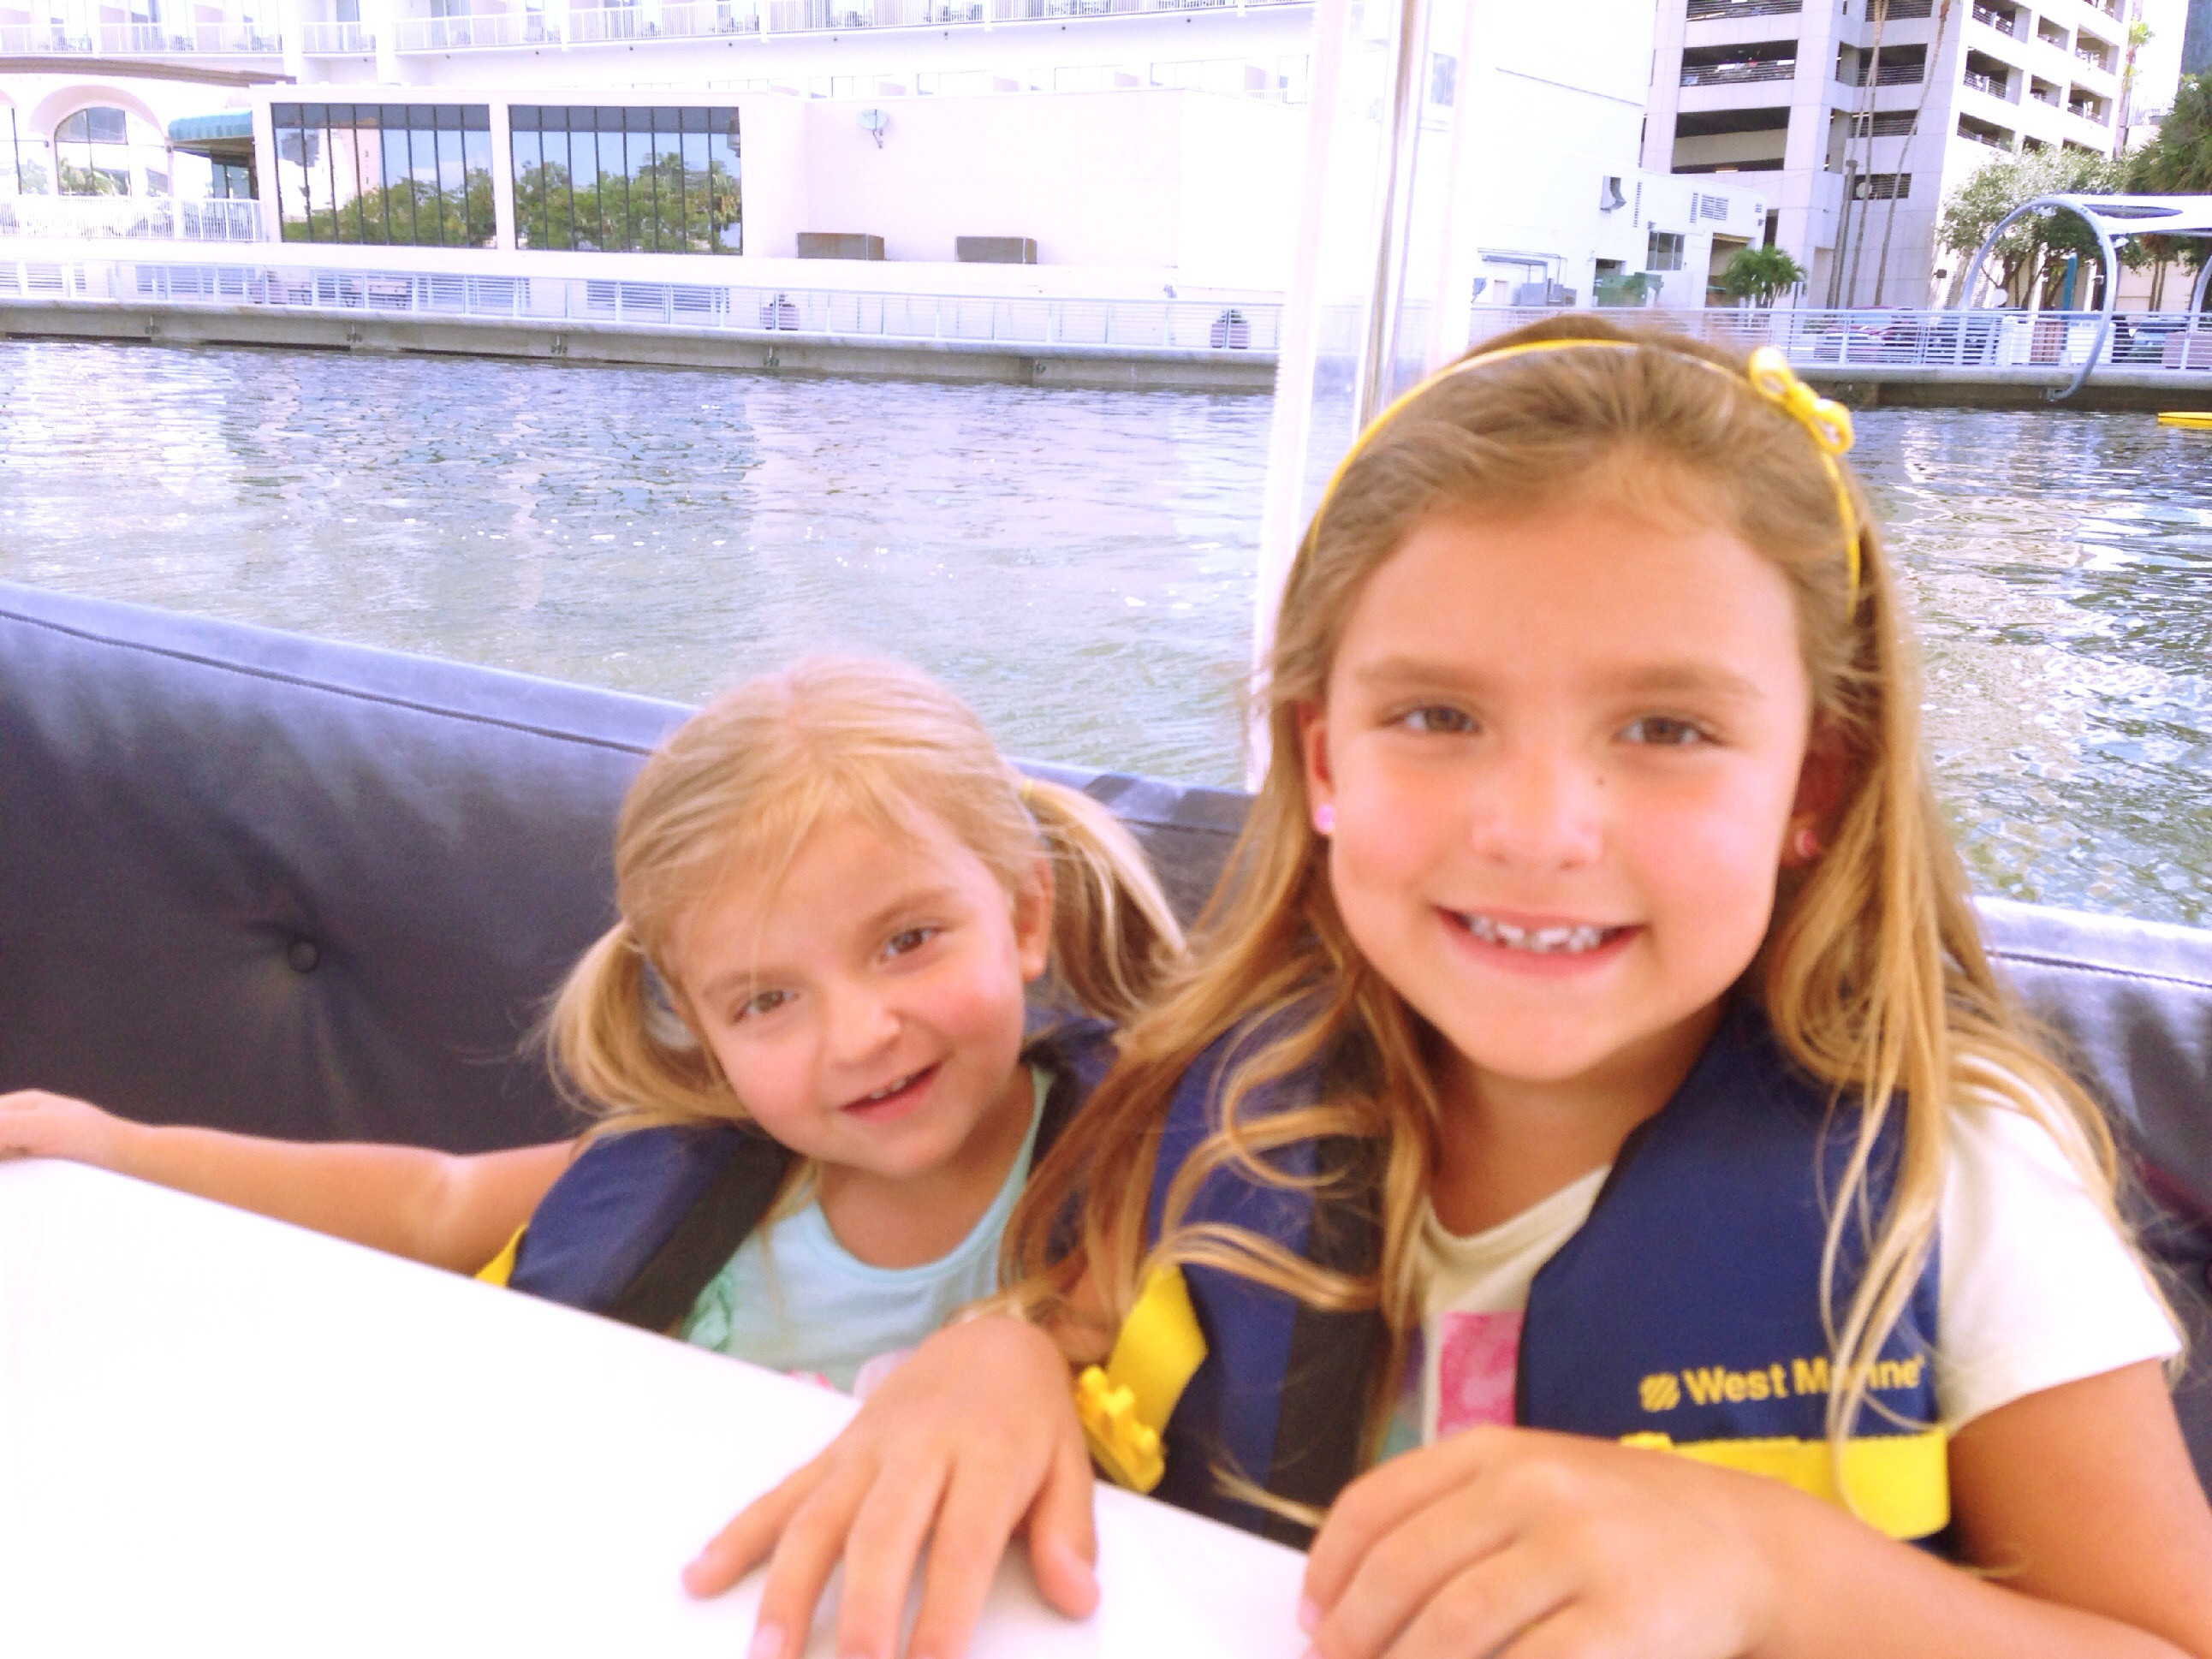 Tampa Mama is Your Urban Insider for Tampa Bay: Tampa eBoats in Tampa's Downtown